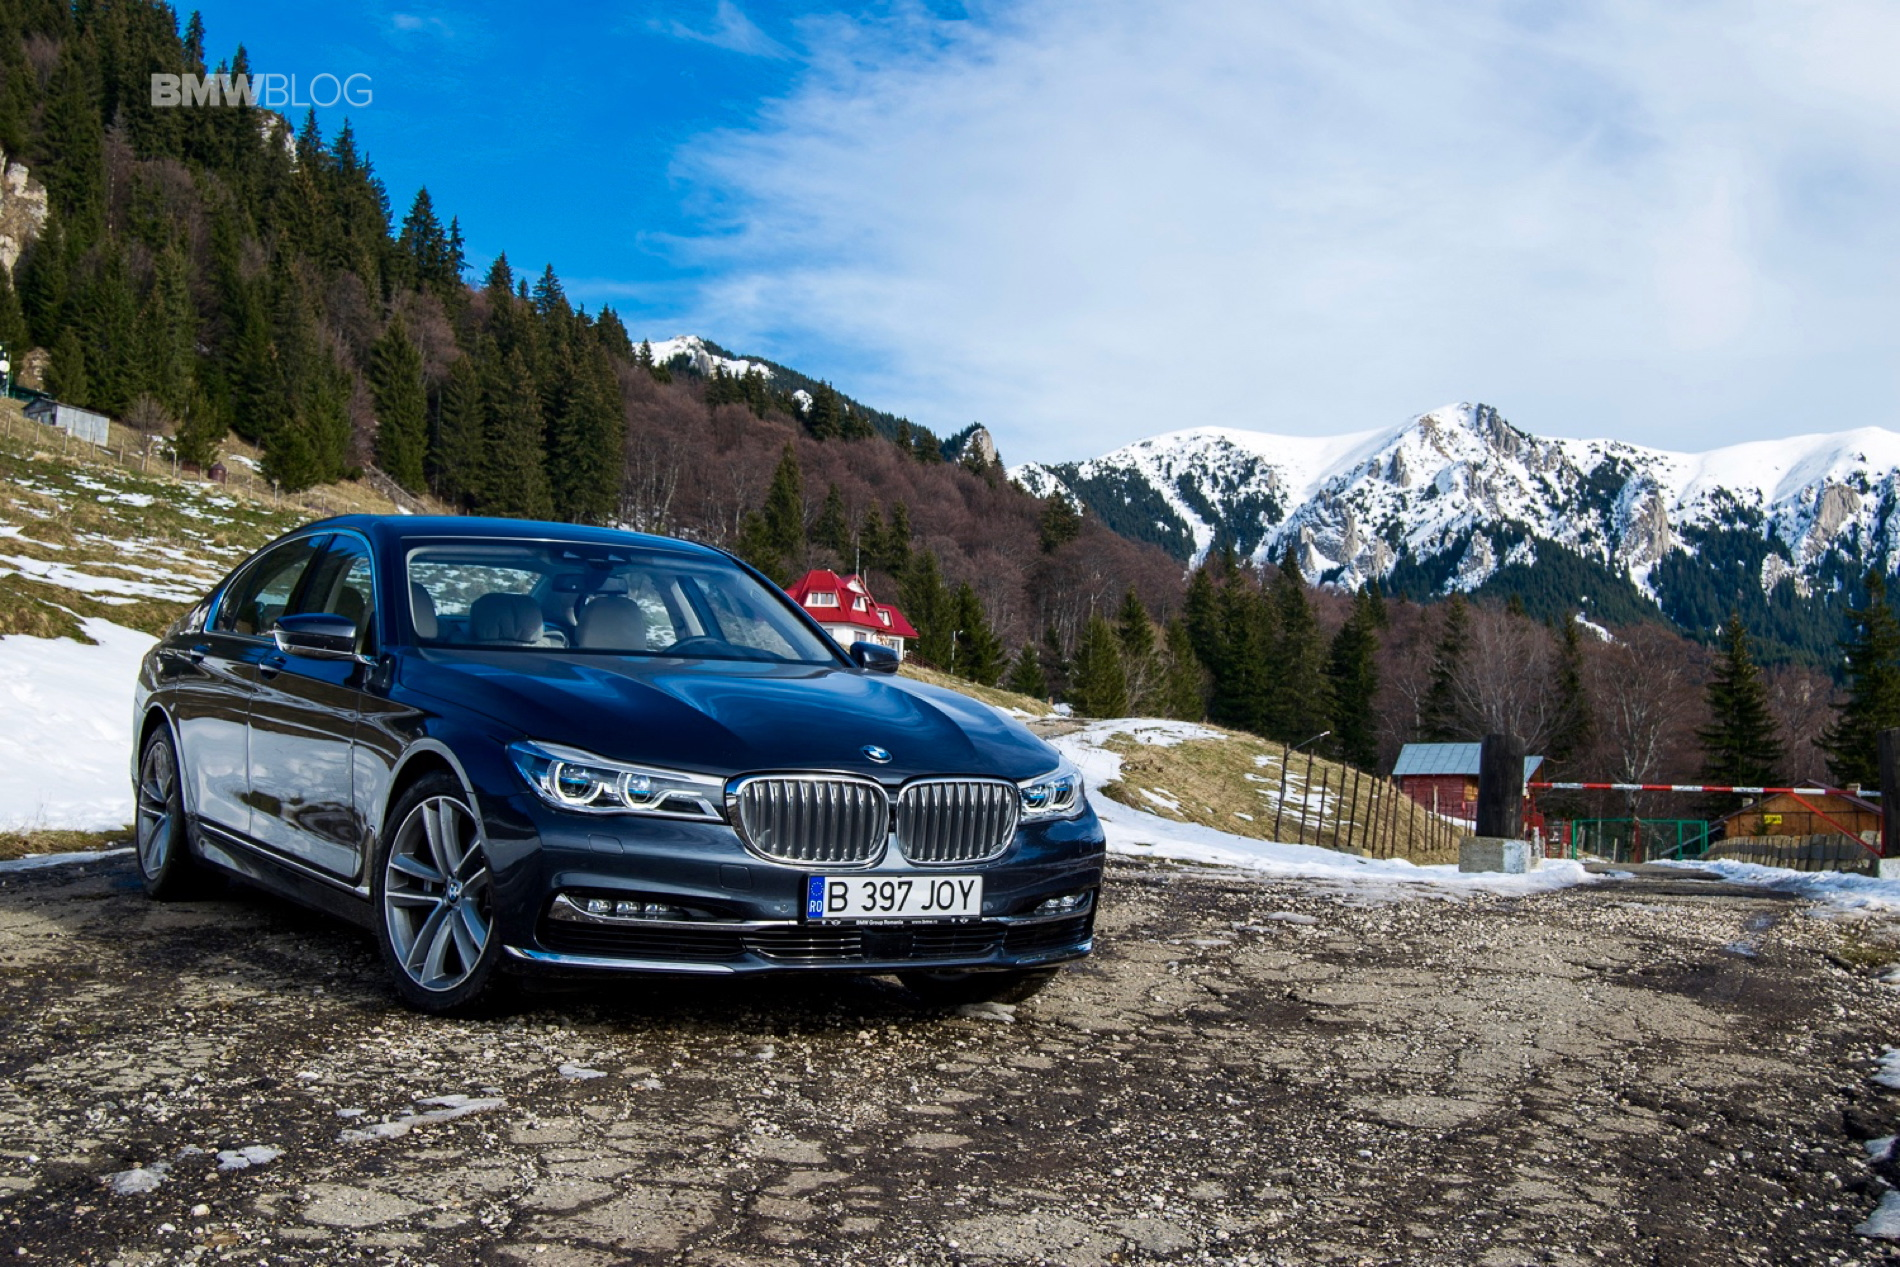 2016 BMW 730d xDrive test drive review 88